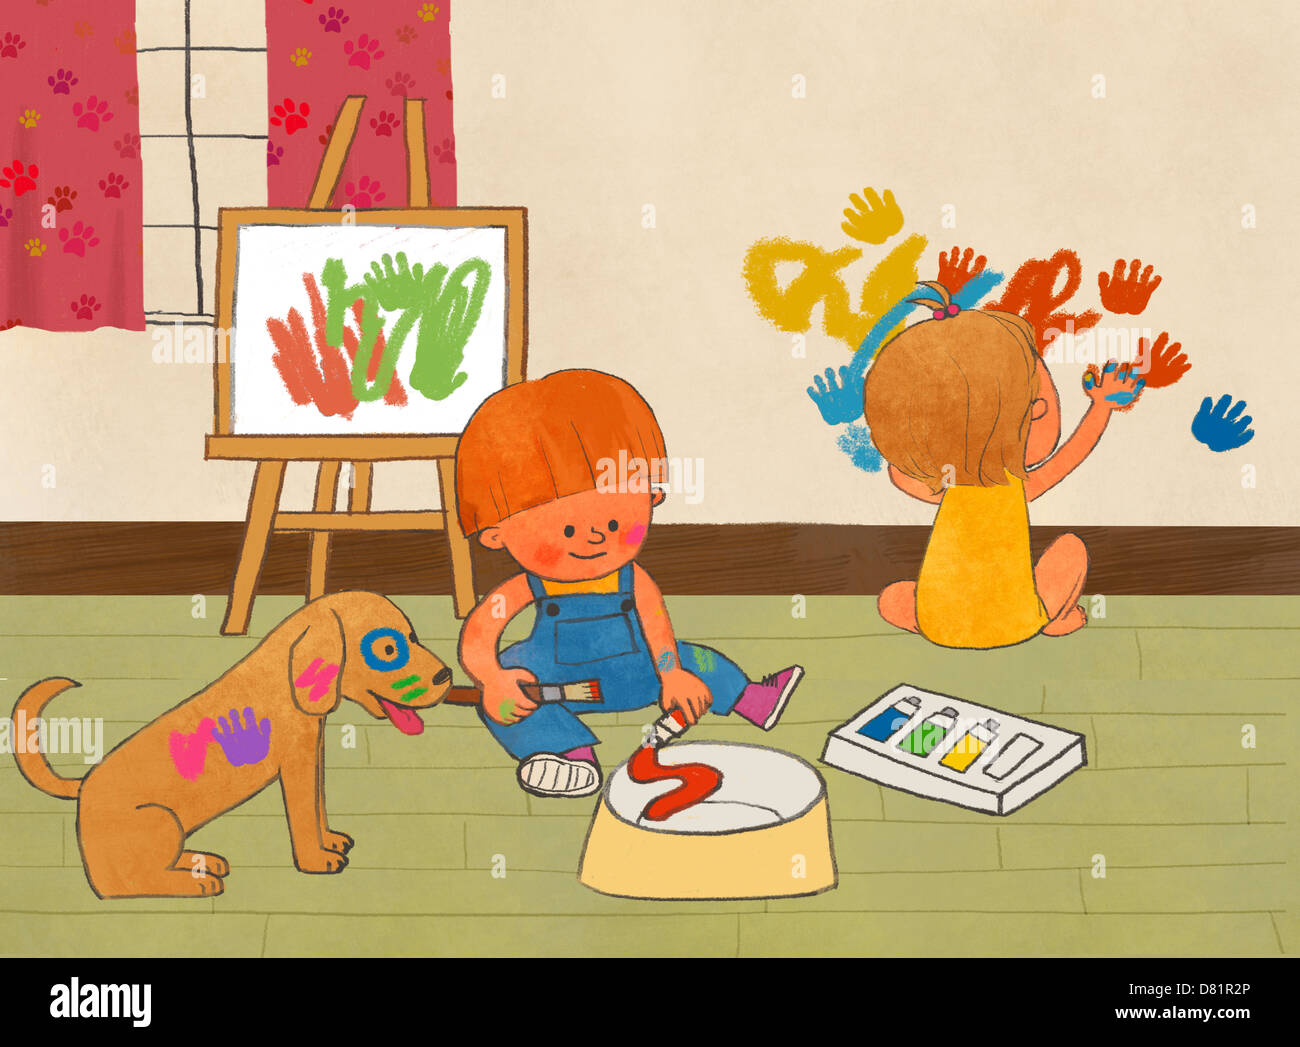 An illustration of children at play. - Stock Image